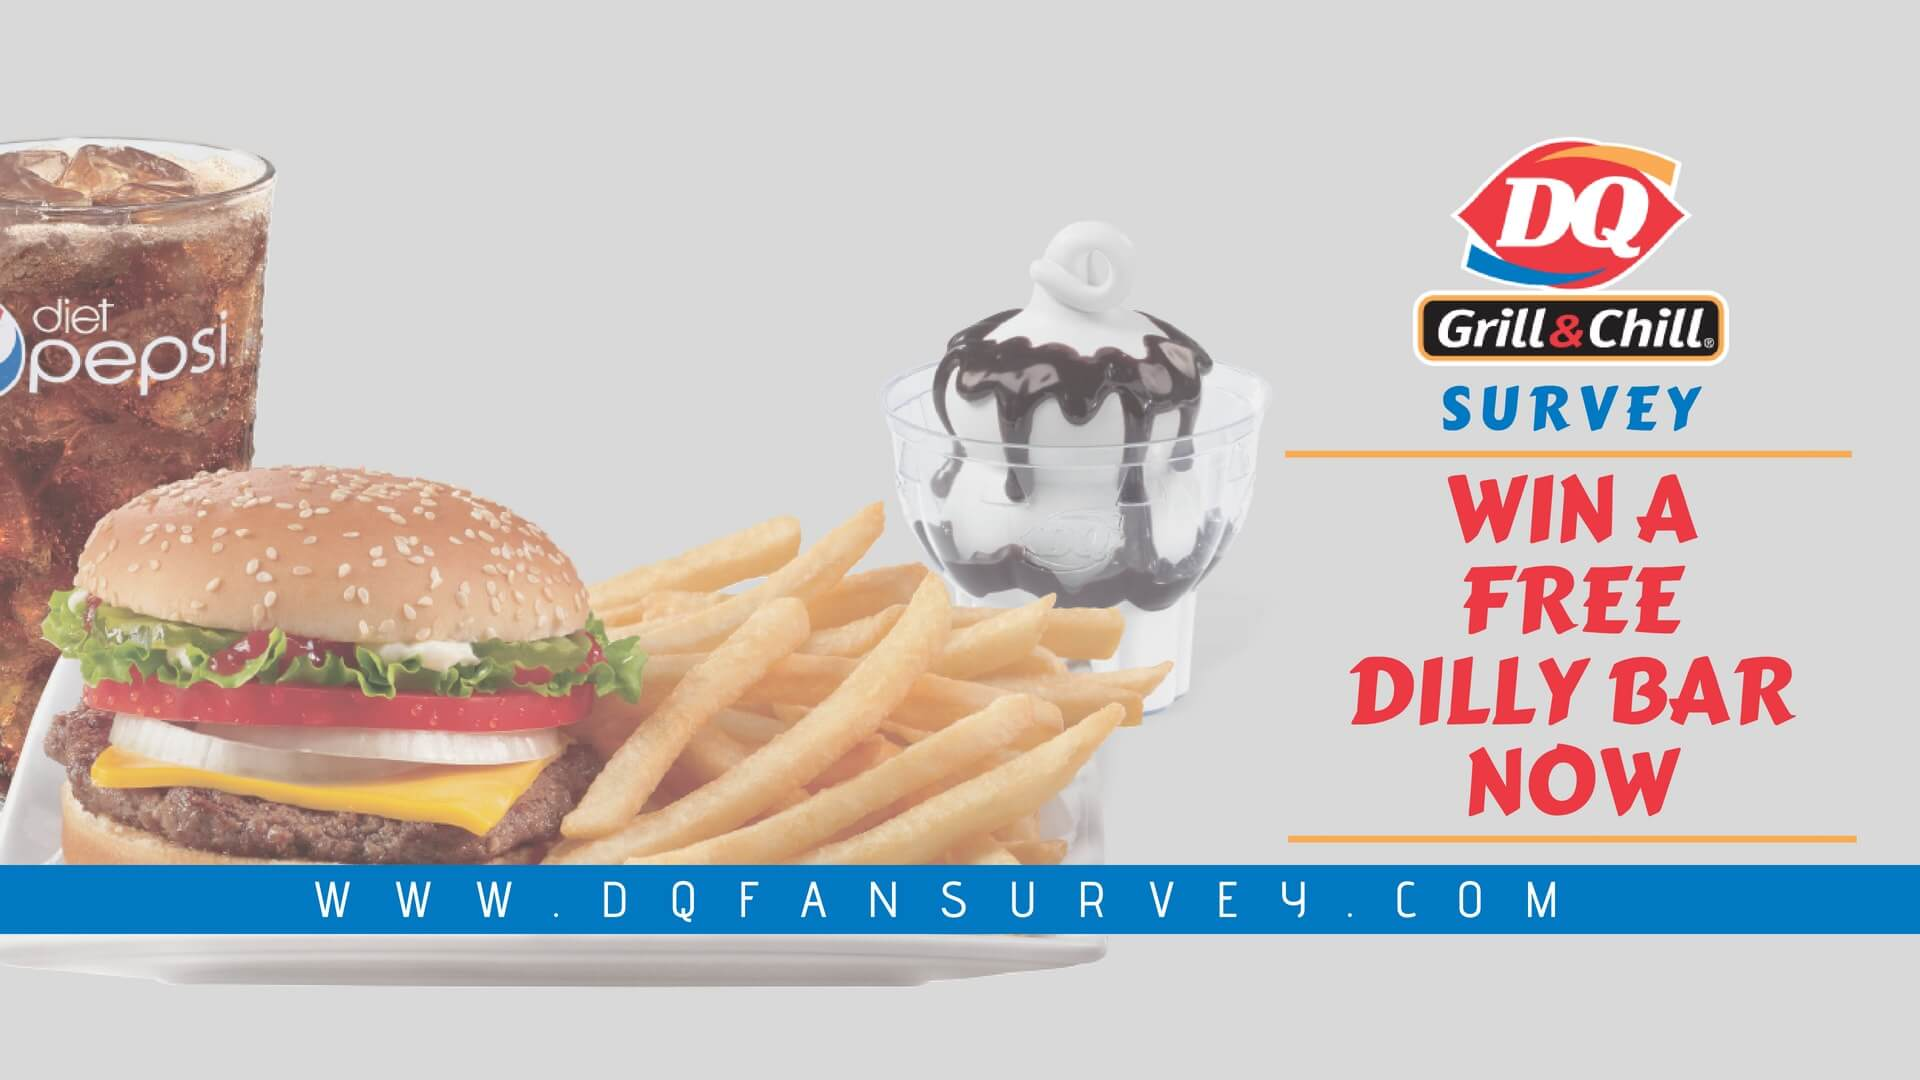 DQFanSurvey | Enter the Survey & get a Free Dilly Bar!